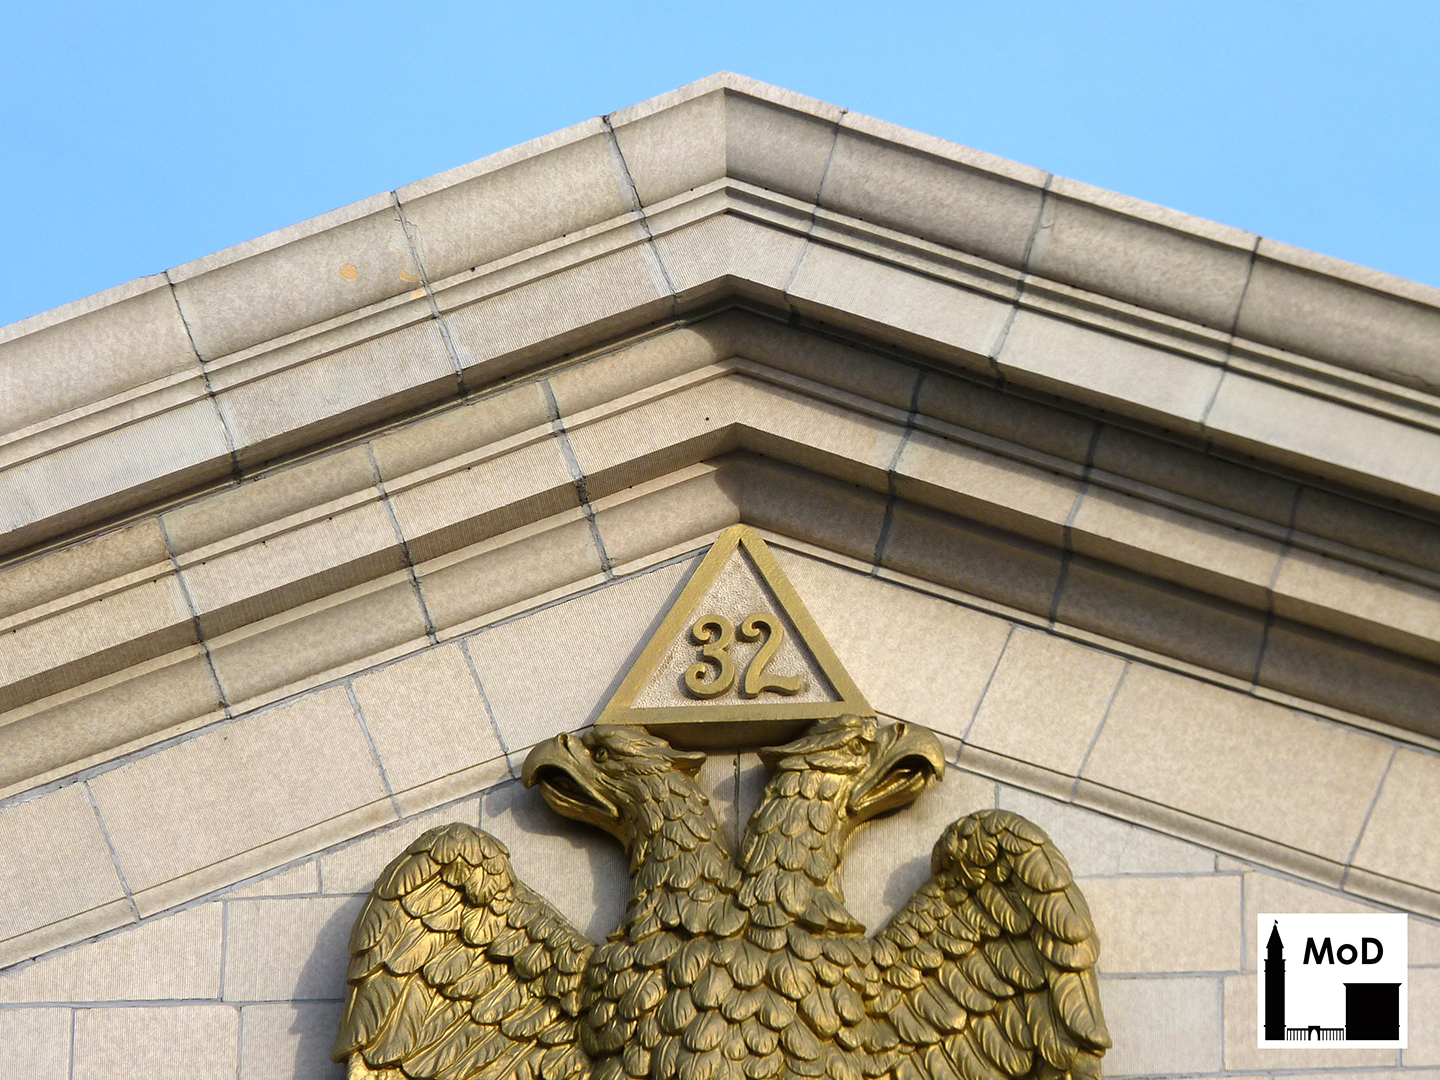 Scottish rite masonic temple the masonry of denver several masonic symbols are present on the exterior of the scottish rite temple including a double headed eagle at the crest of the western pediment buycottarizona Gallery